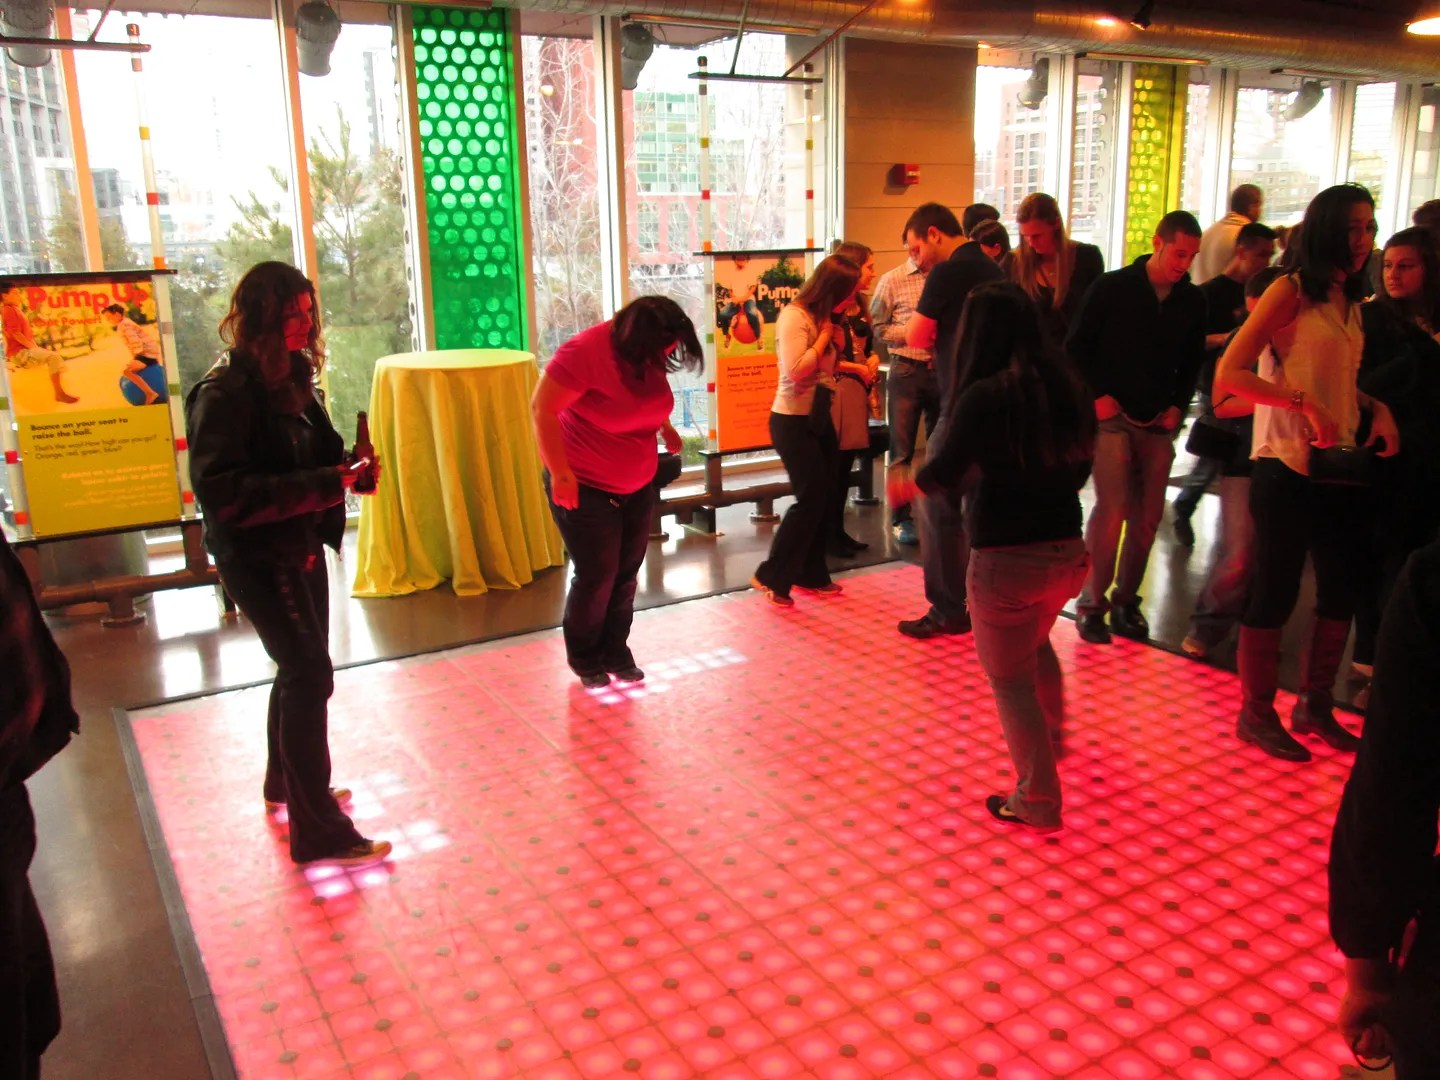 tetris dance floor at boston children's museum